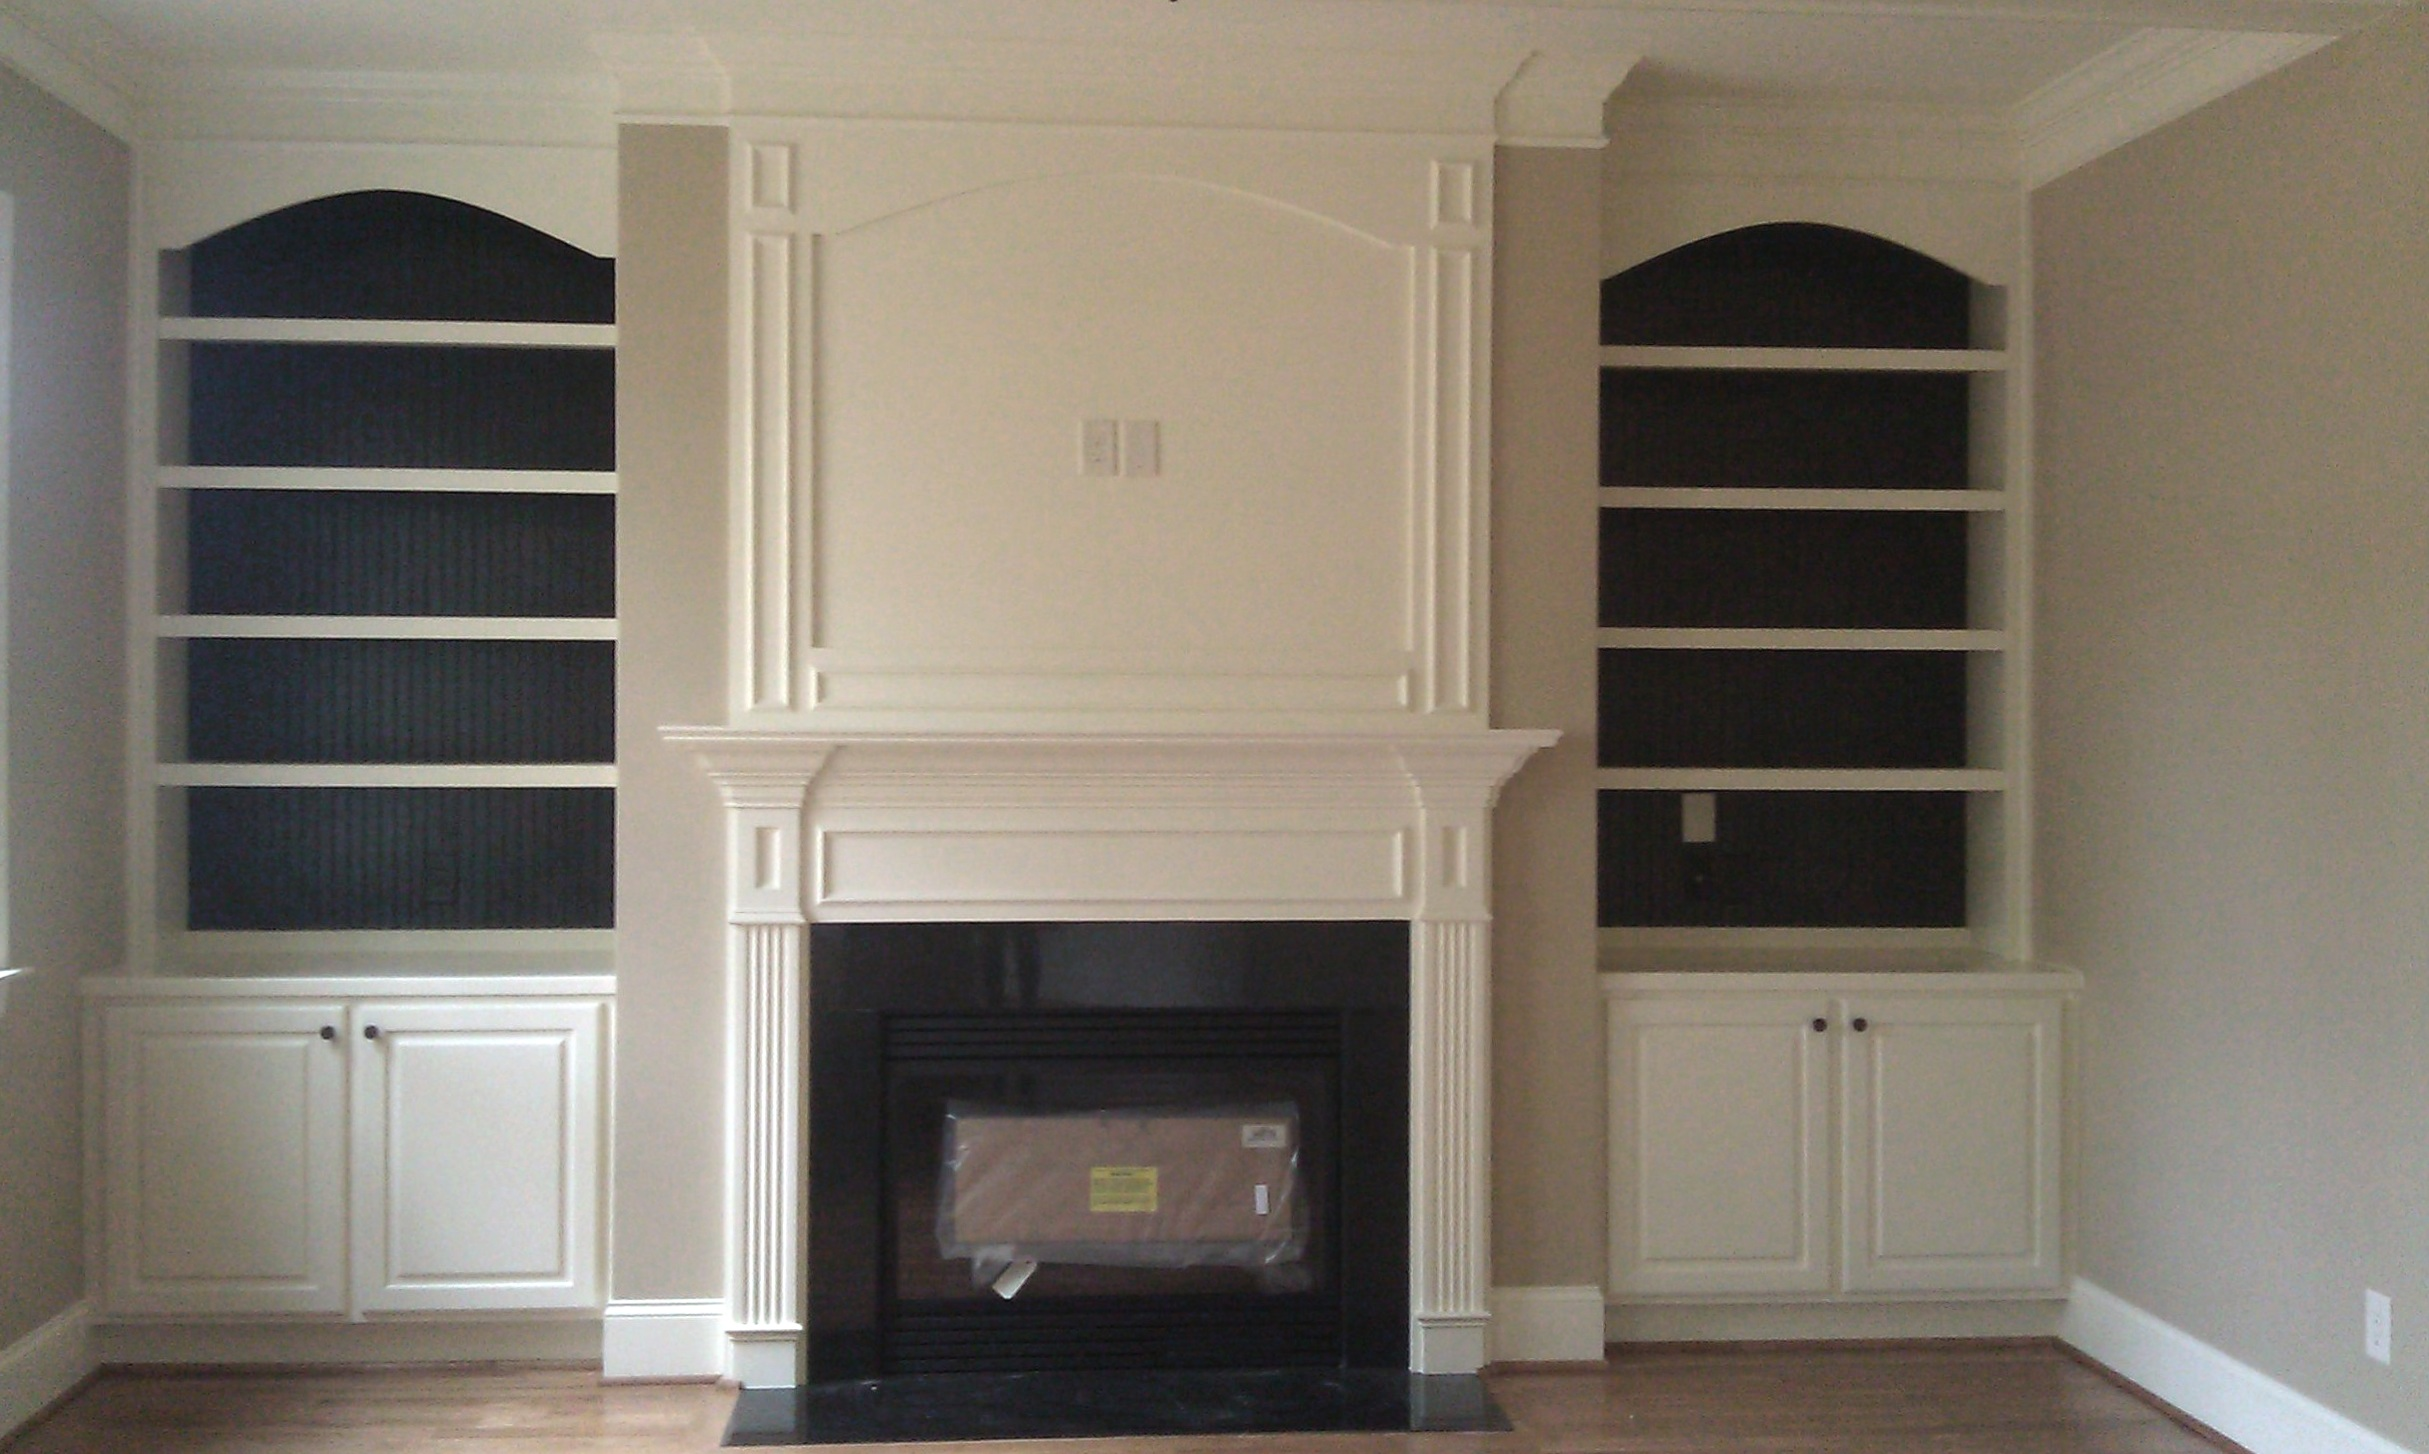 Fireplace Built-Ins with Adjustable Shelves, Arch Detail, Accent Backer Color, Raised Panel Doors, and Crown